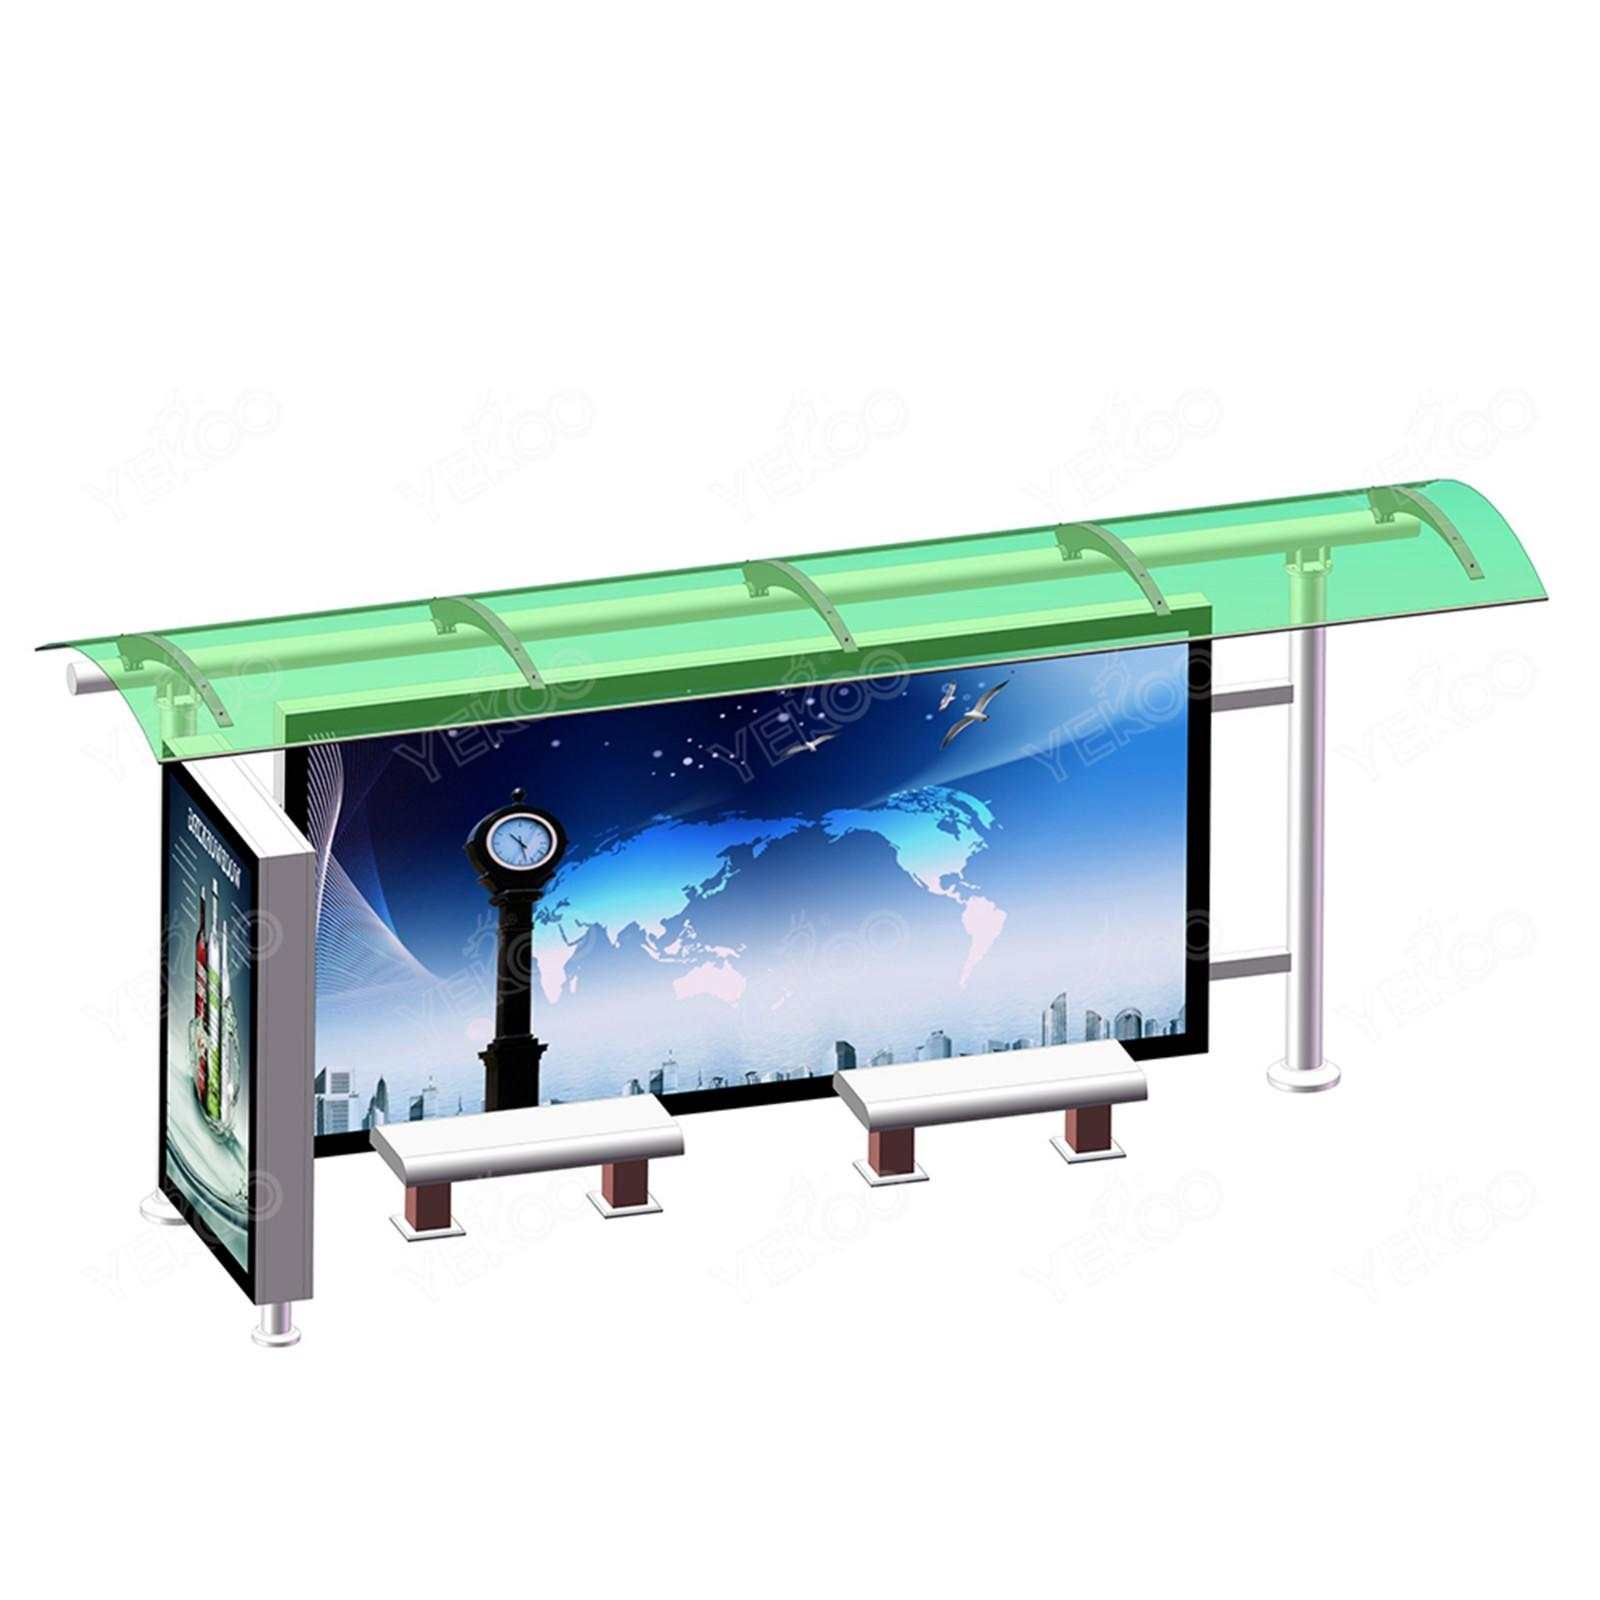 YEROO custom metal bus stop shelter steel structure for outdoor advertising